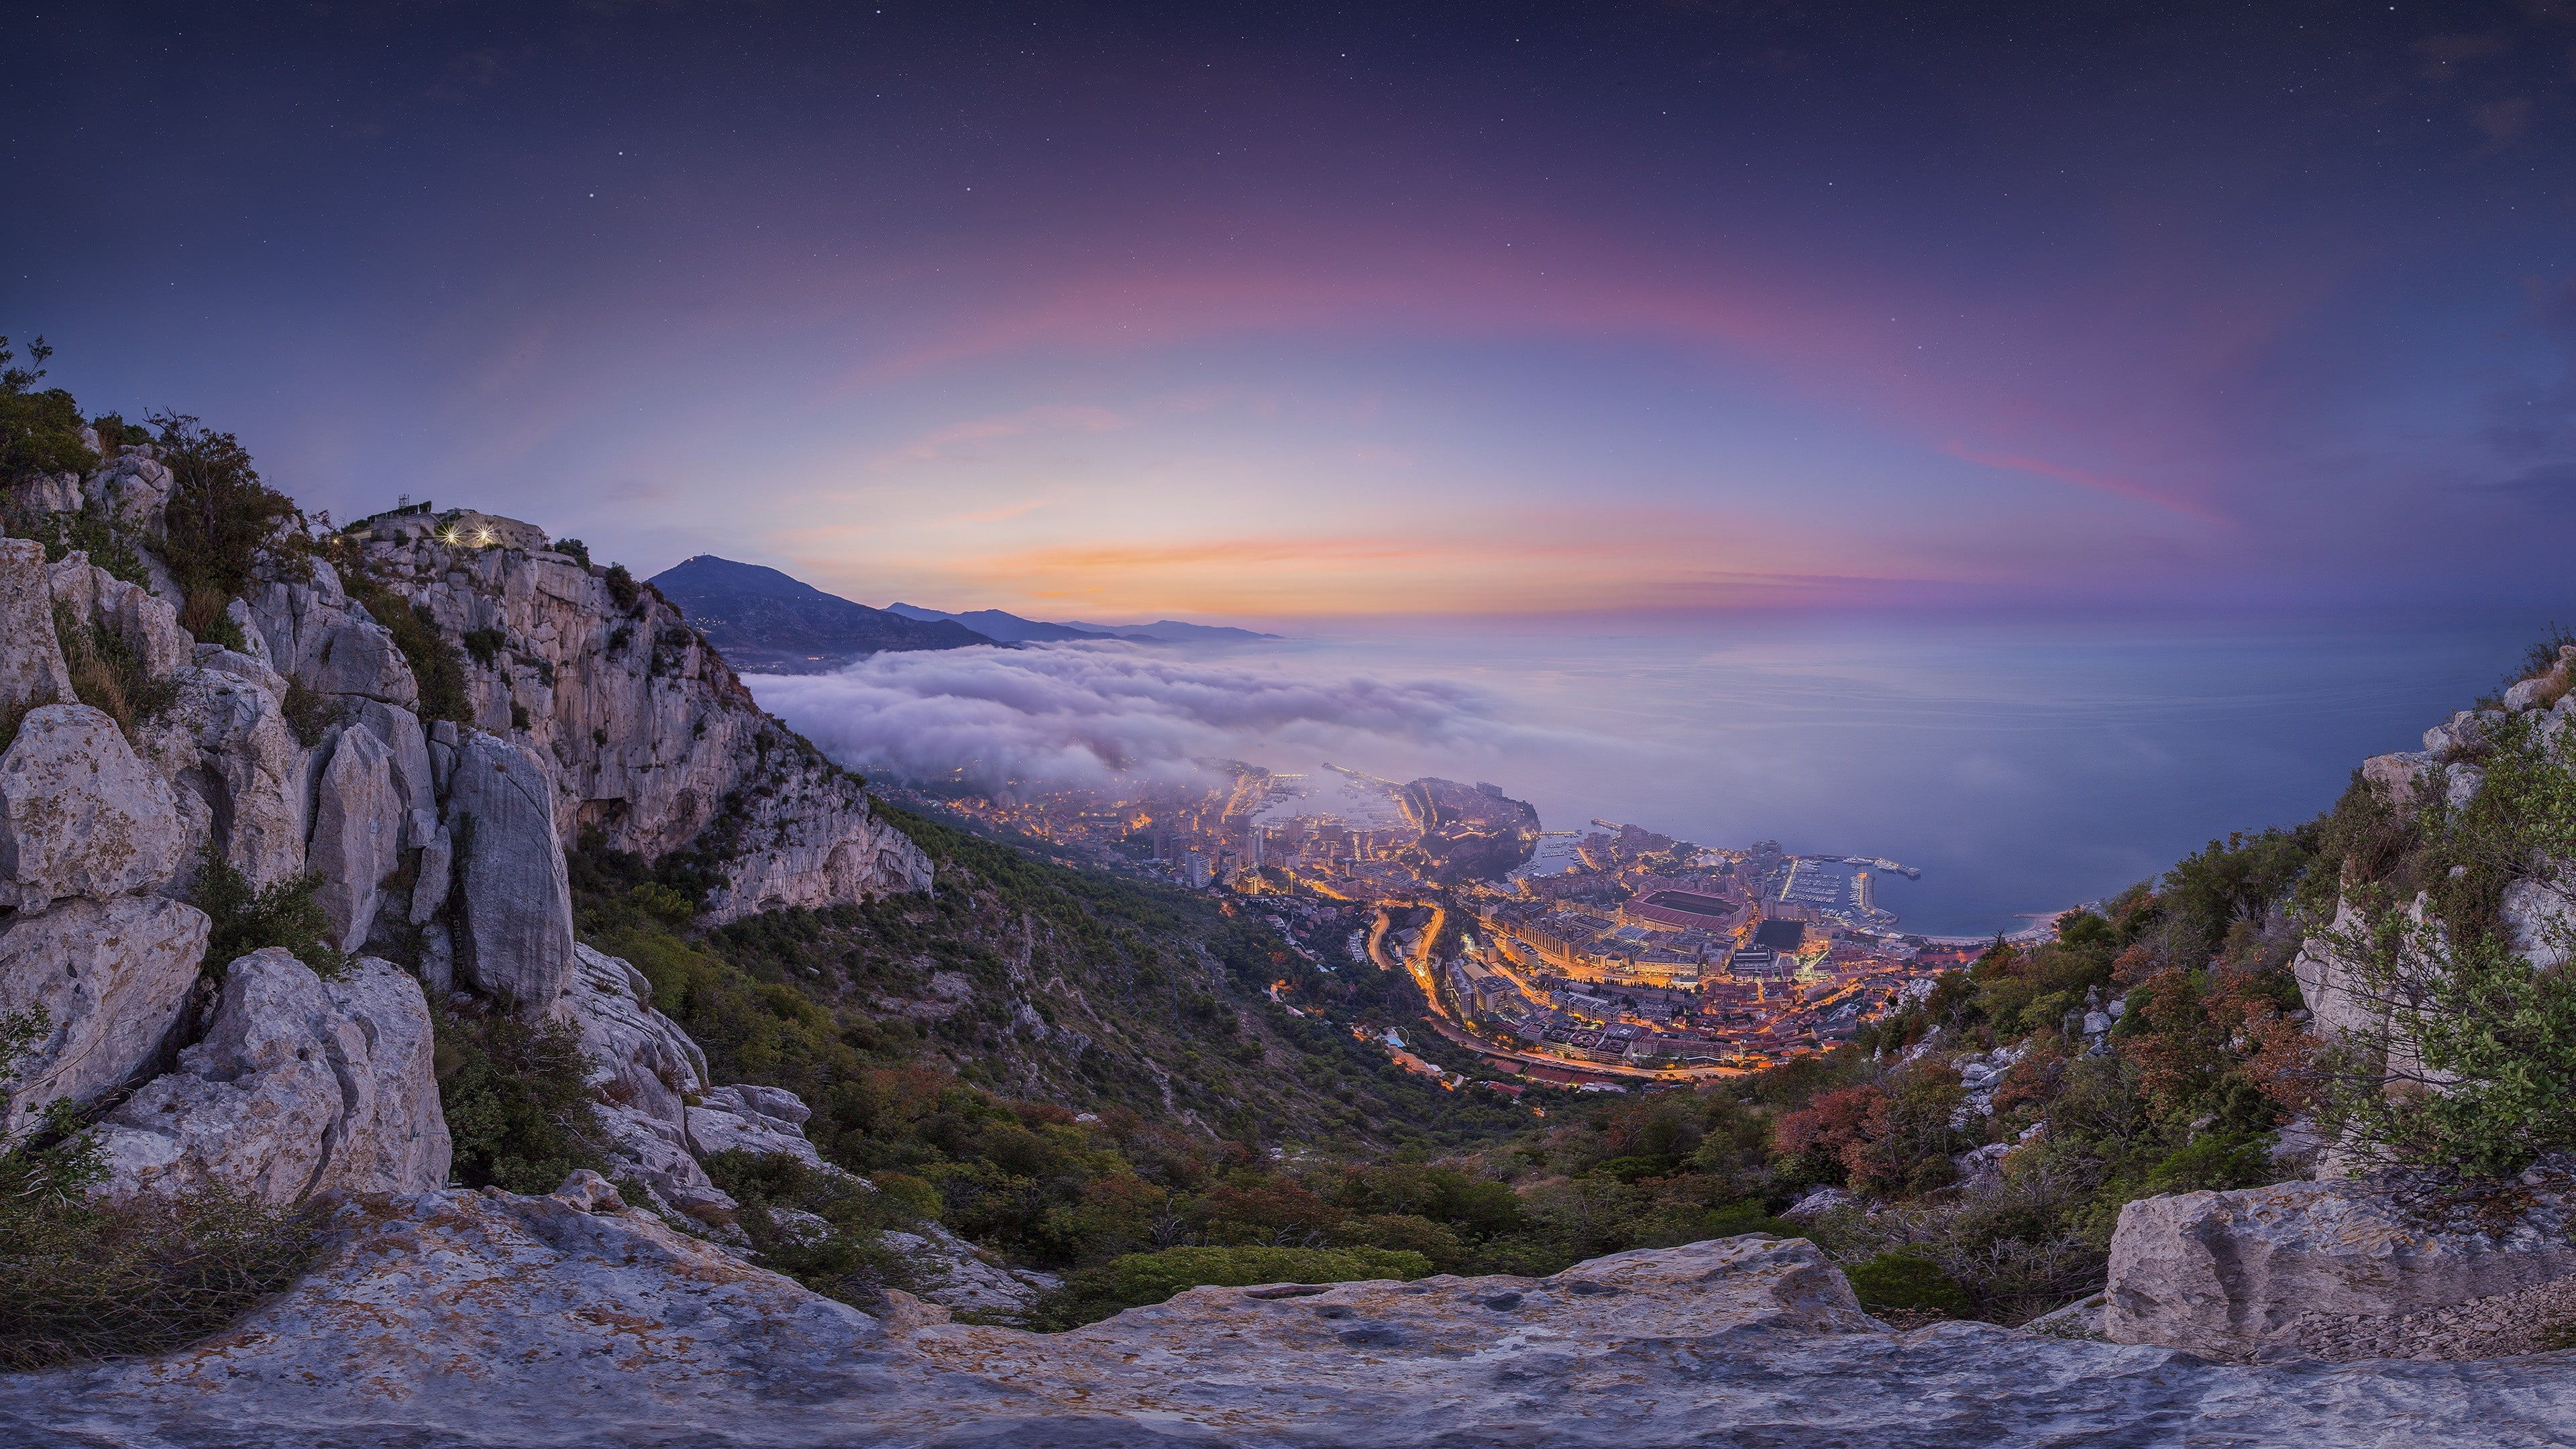 sunrise Summer Monaco 4k pics ultra hd 4K wallpaper